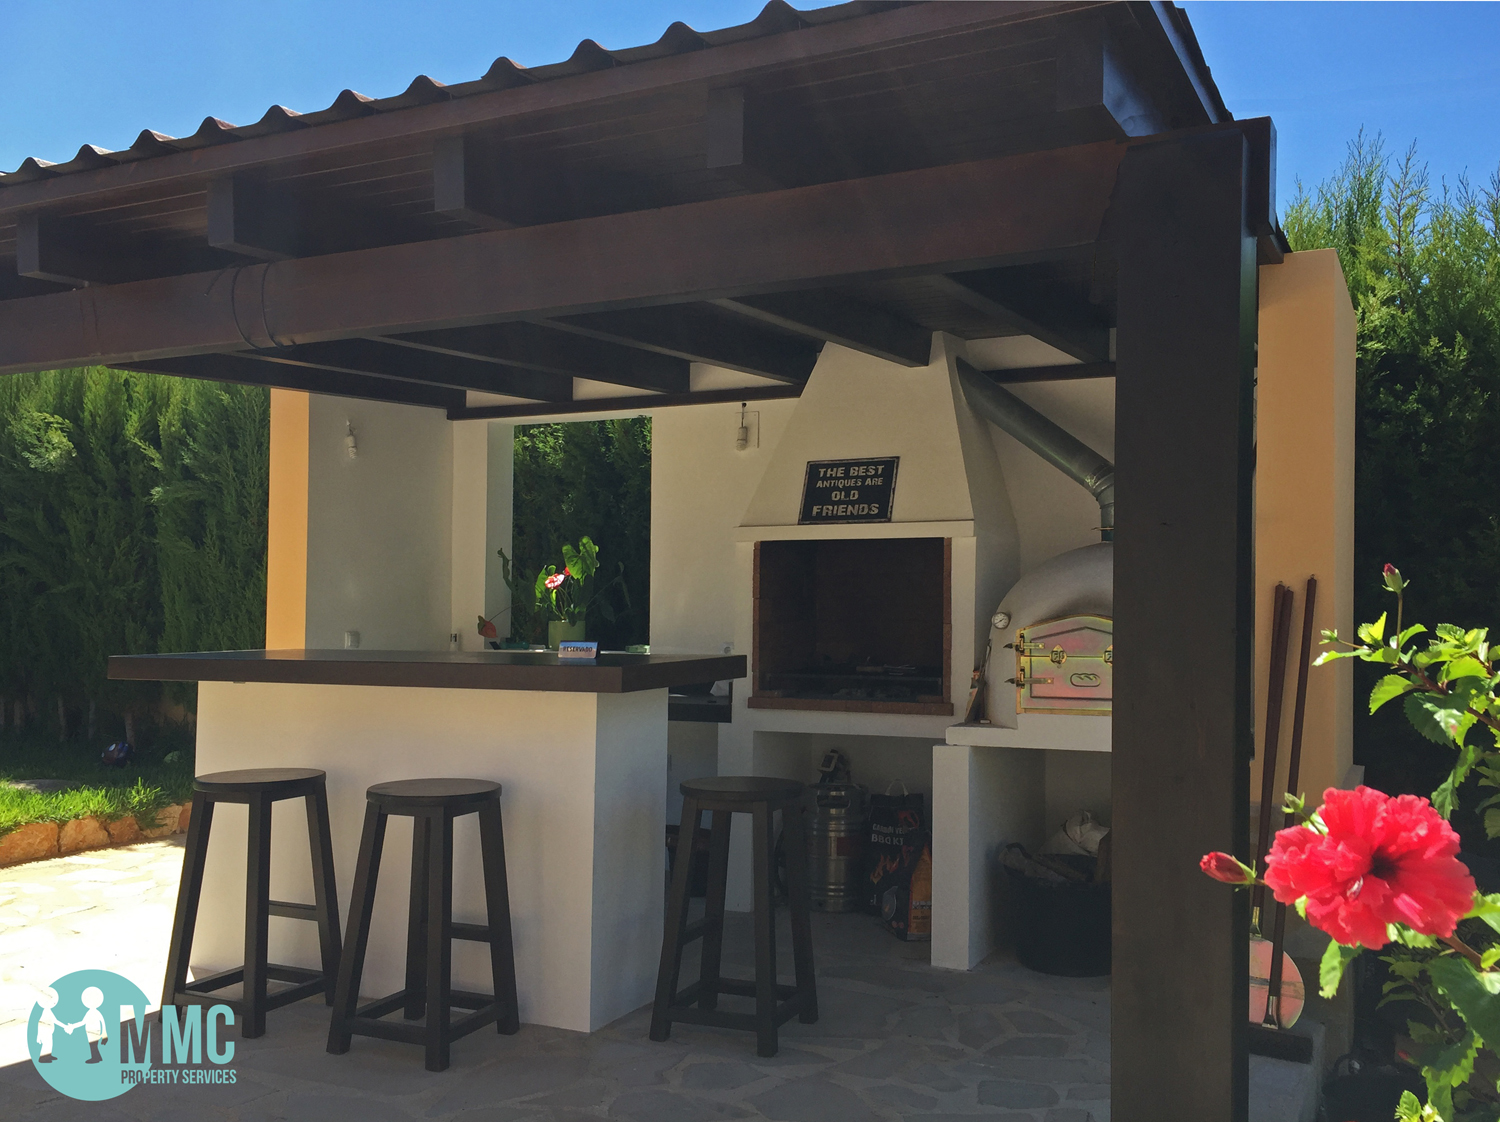 Outdoor Kitchen Mmc Property Services Javea